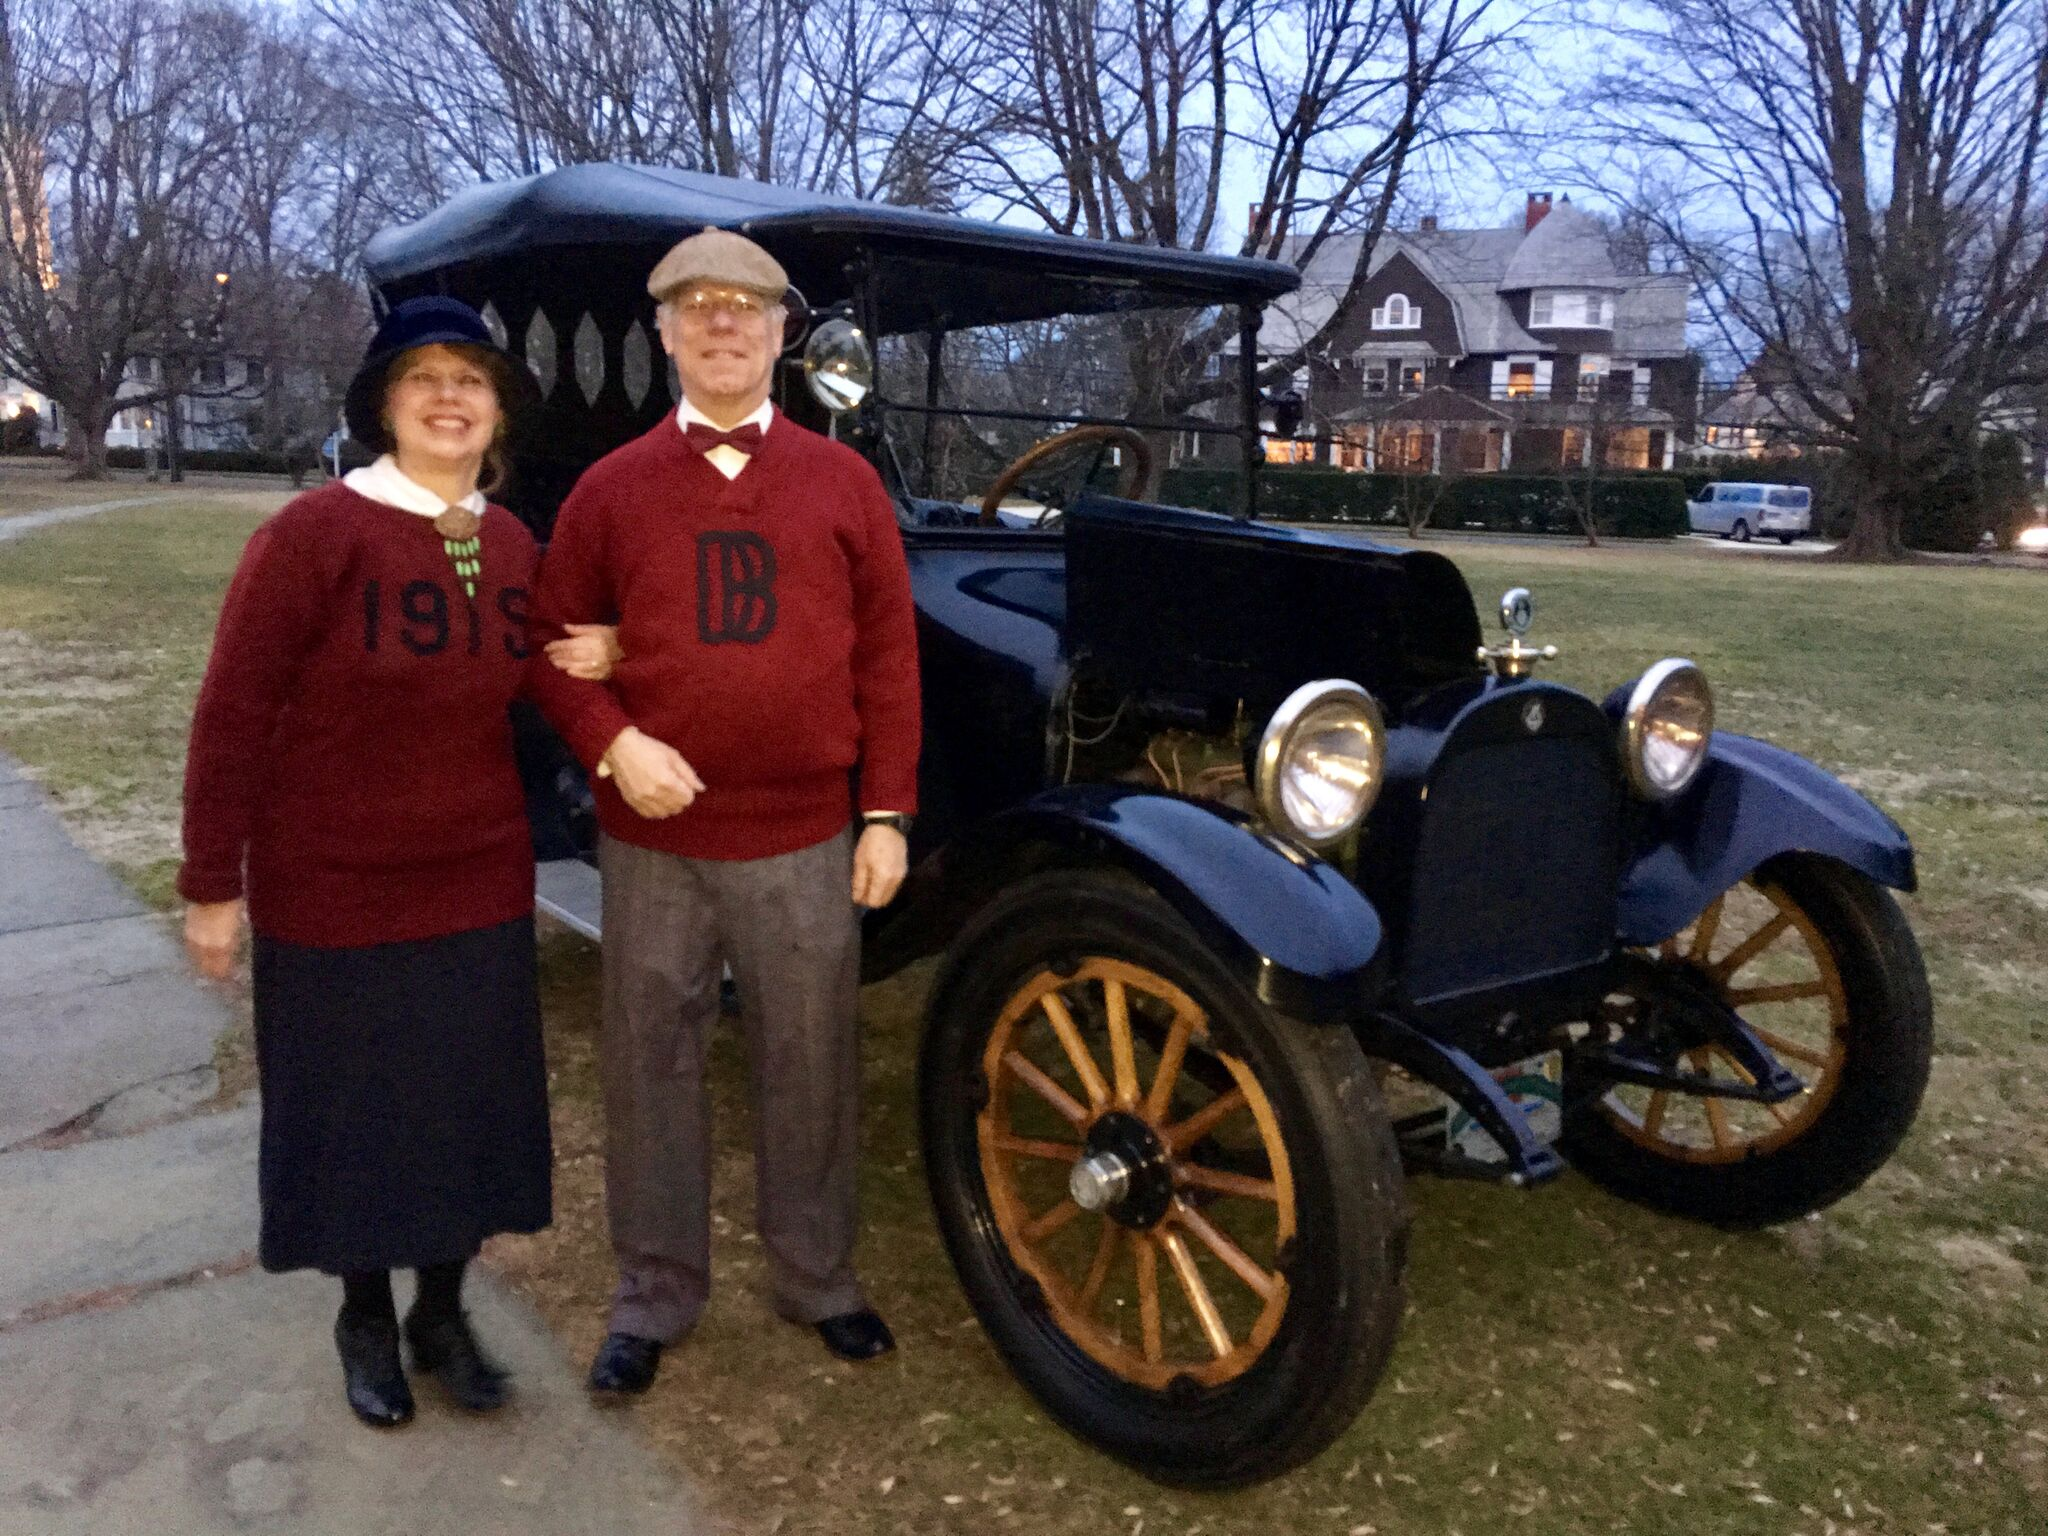 Gwen and Parker Ackley's antique car, seen in our film